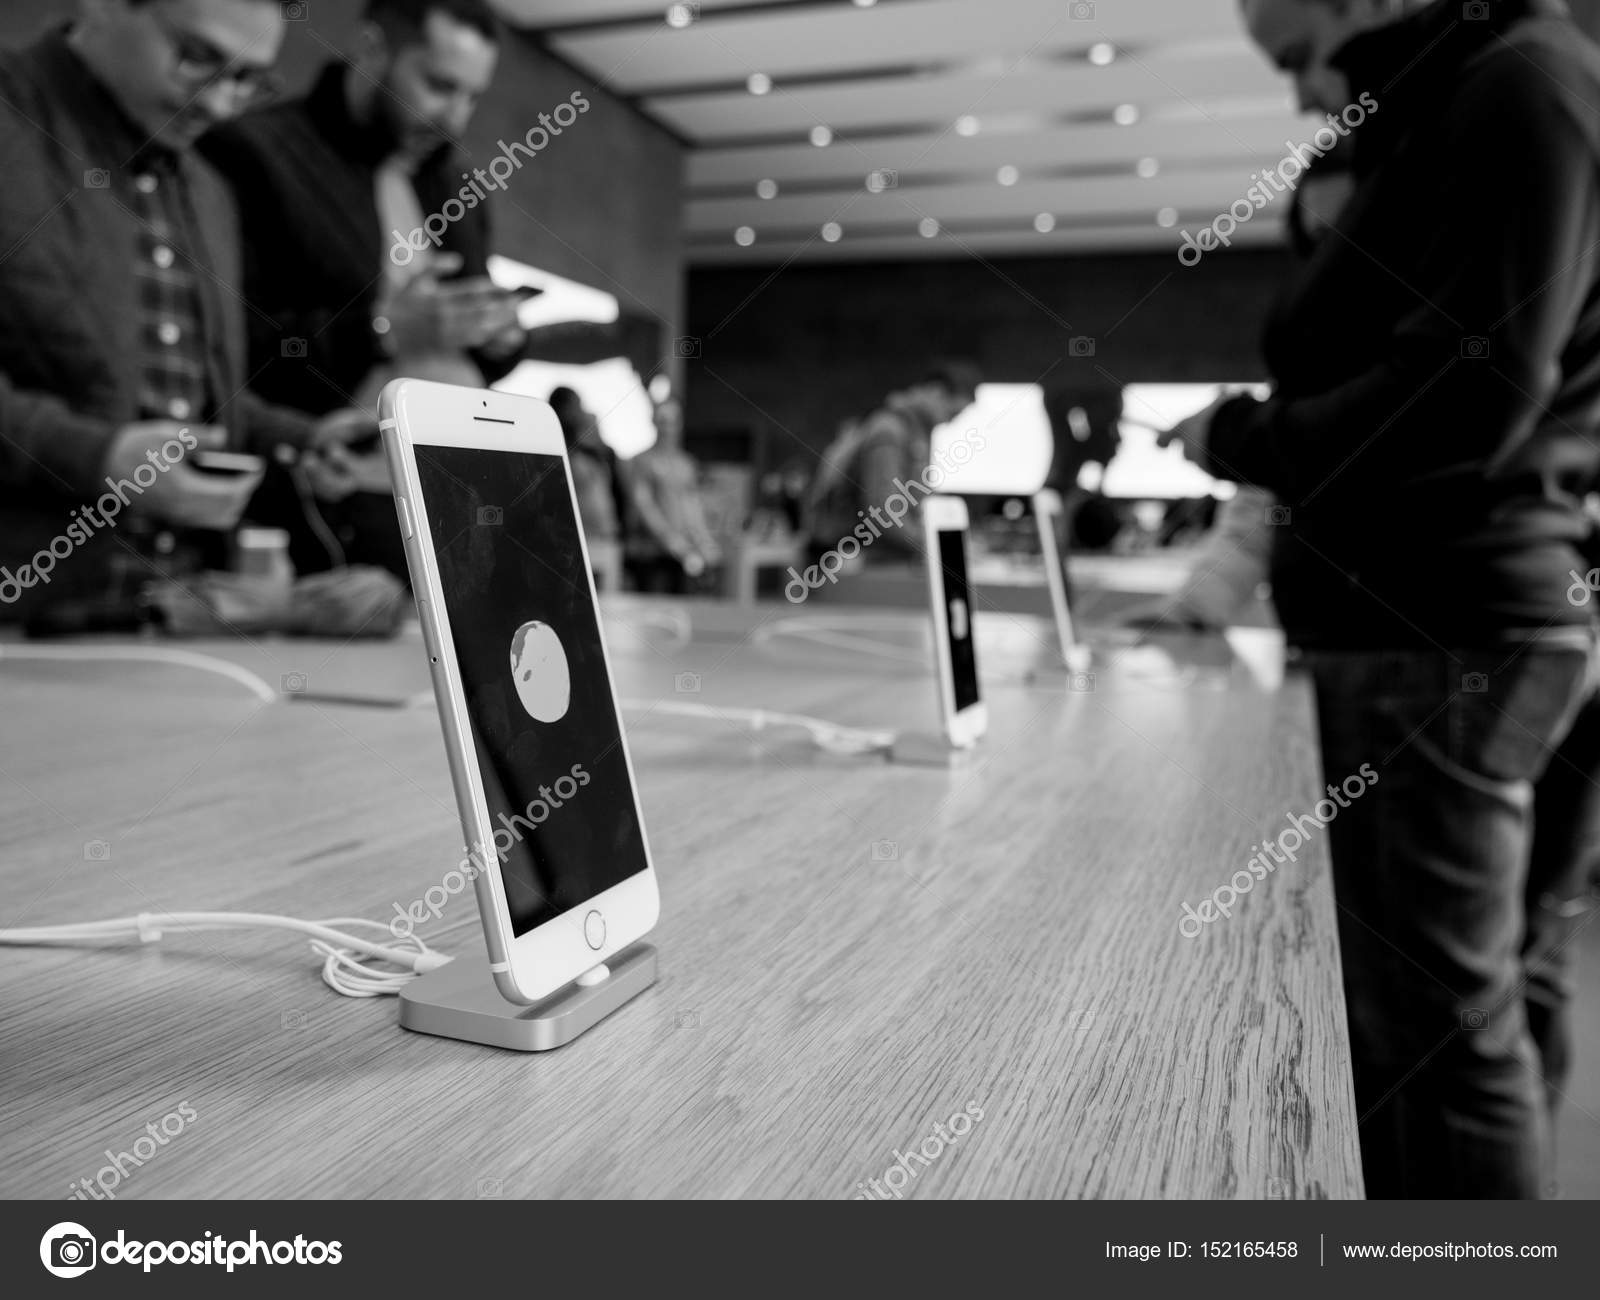 Strasbourg france april 27 2016 black and white image of latest iphone 7 and iphone 7 plus in apple store photo by ifeelstock